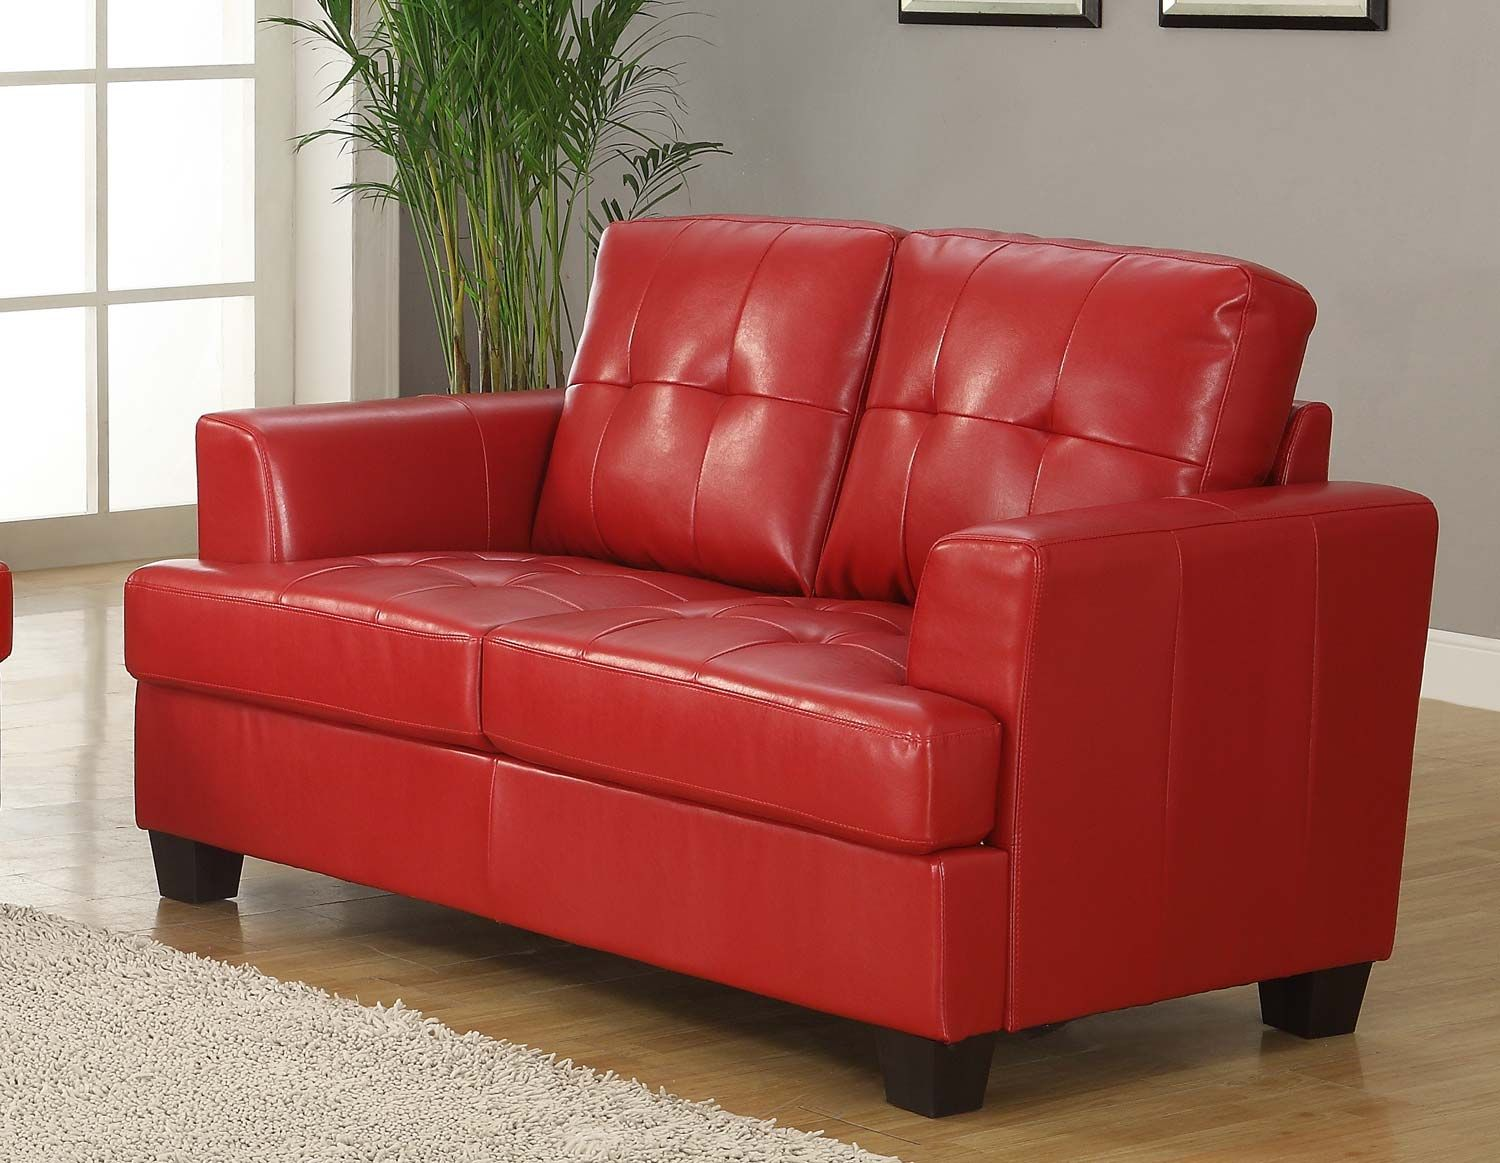 real sofa small estate photo loveseats at bedroom loveseat red for